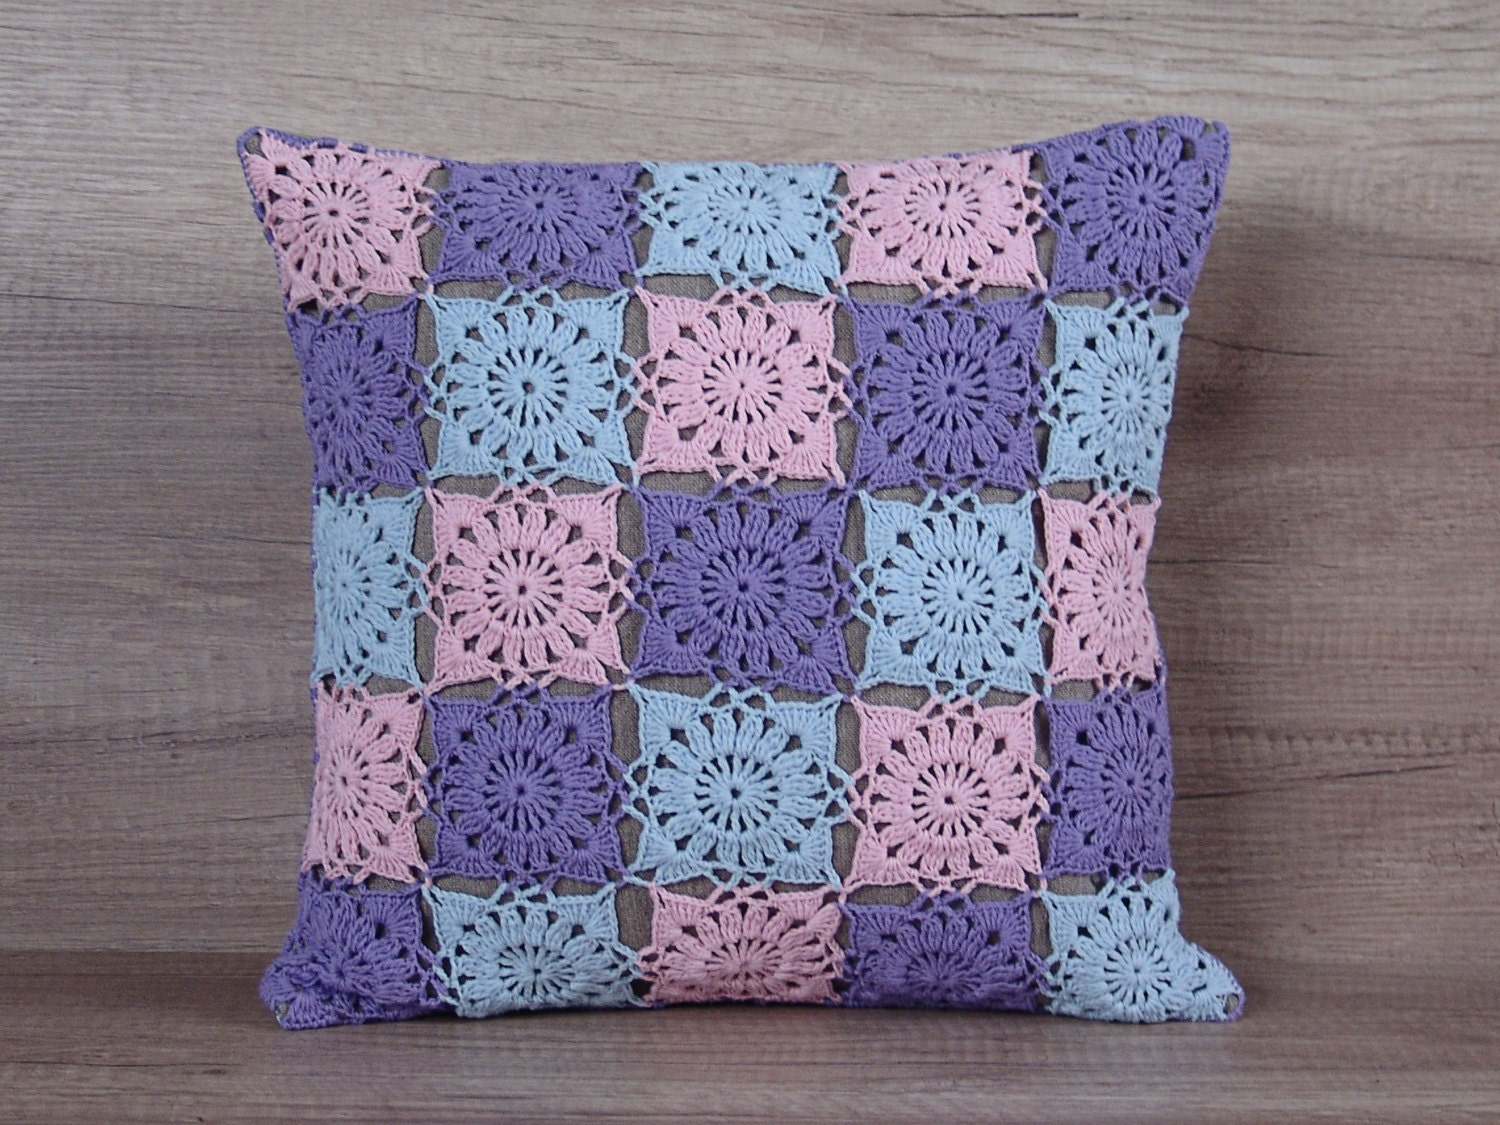 Crochet Pattern Granny Square Pillows : Cool crochet granny square pillow colorful pastel pink blue